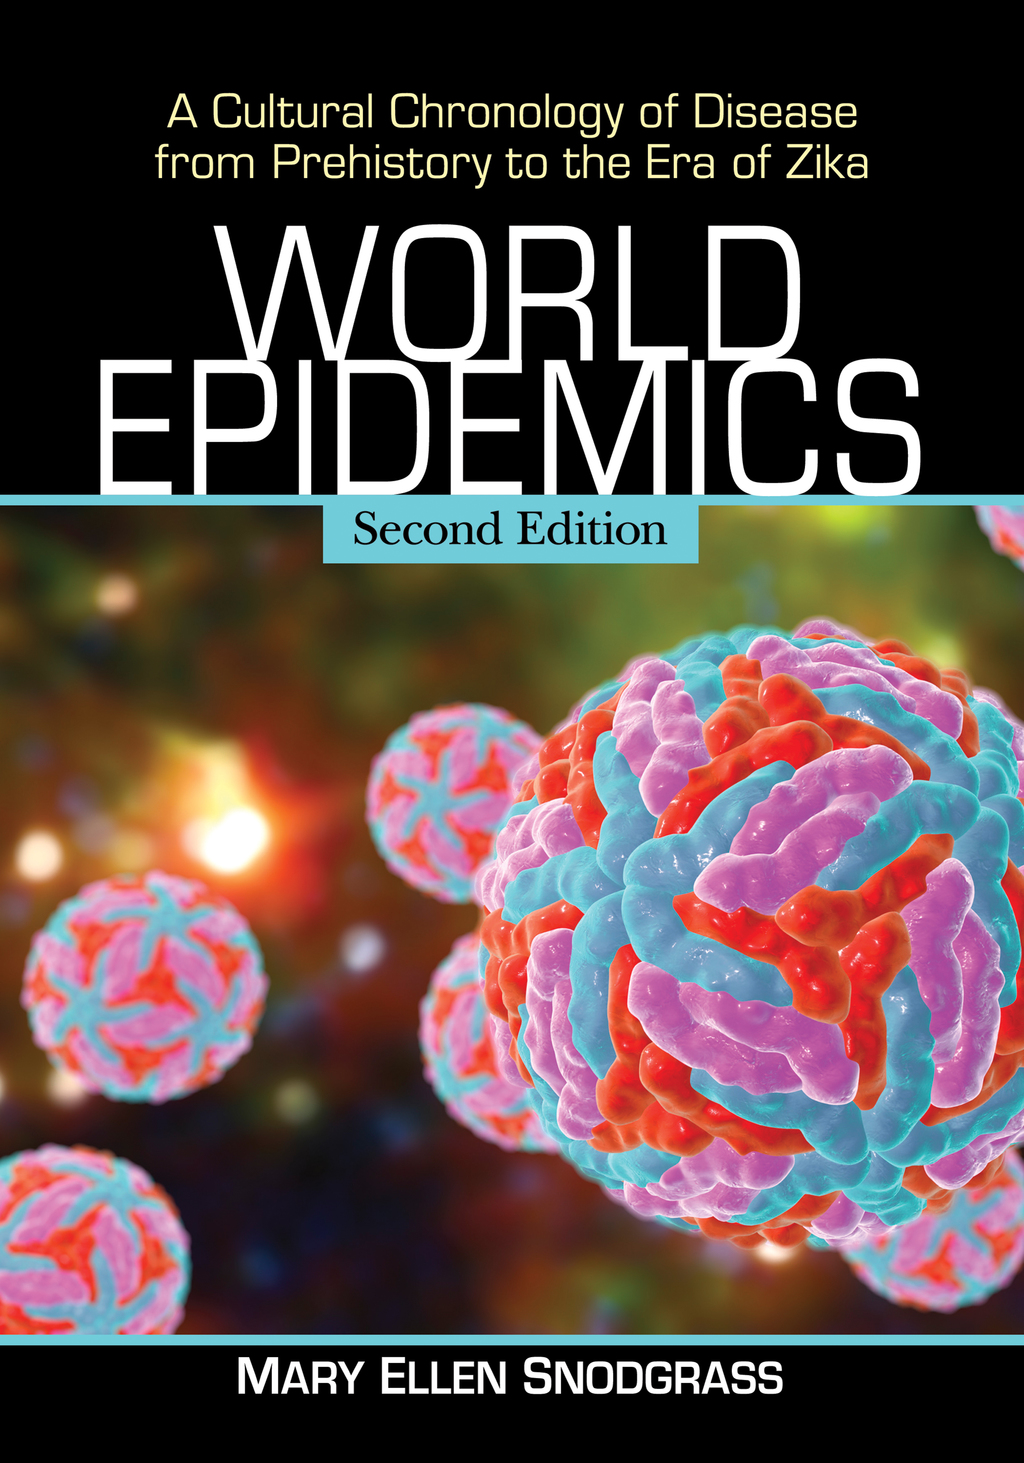 World Epidemics: A Cultural Chronology of Disease from Prehistory to the Era of Zika  2d ed. (eBook)